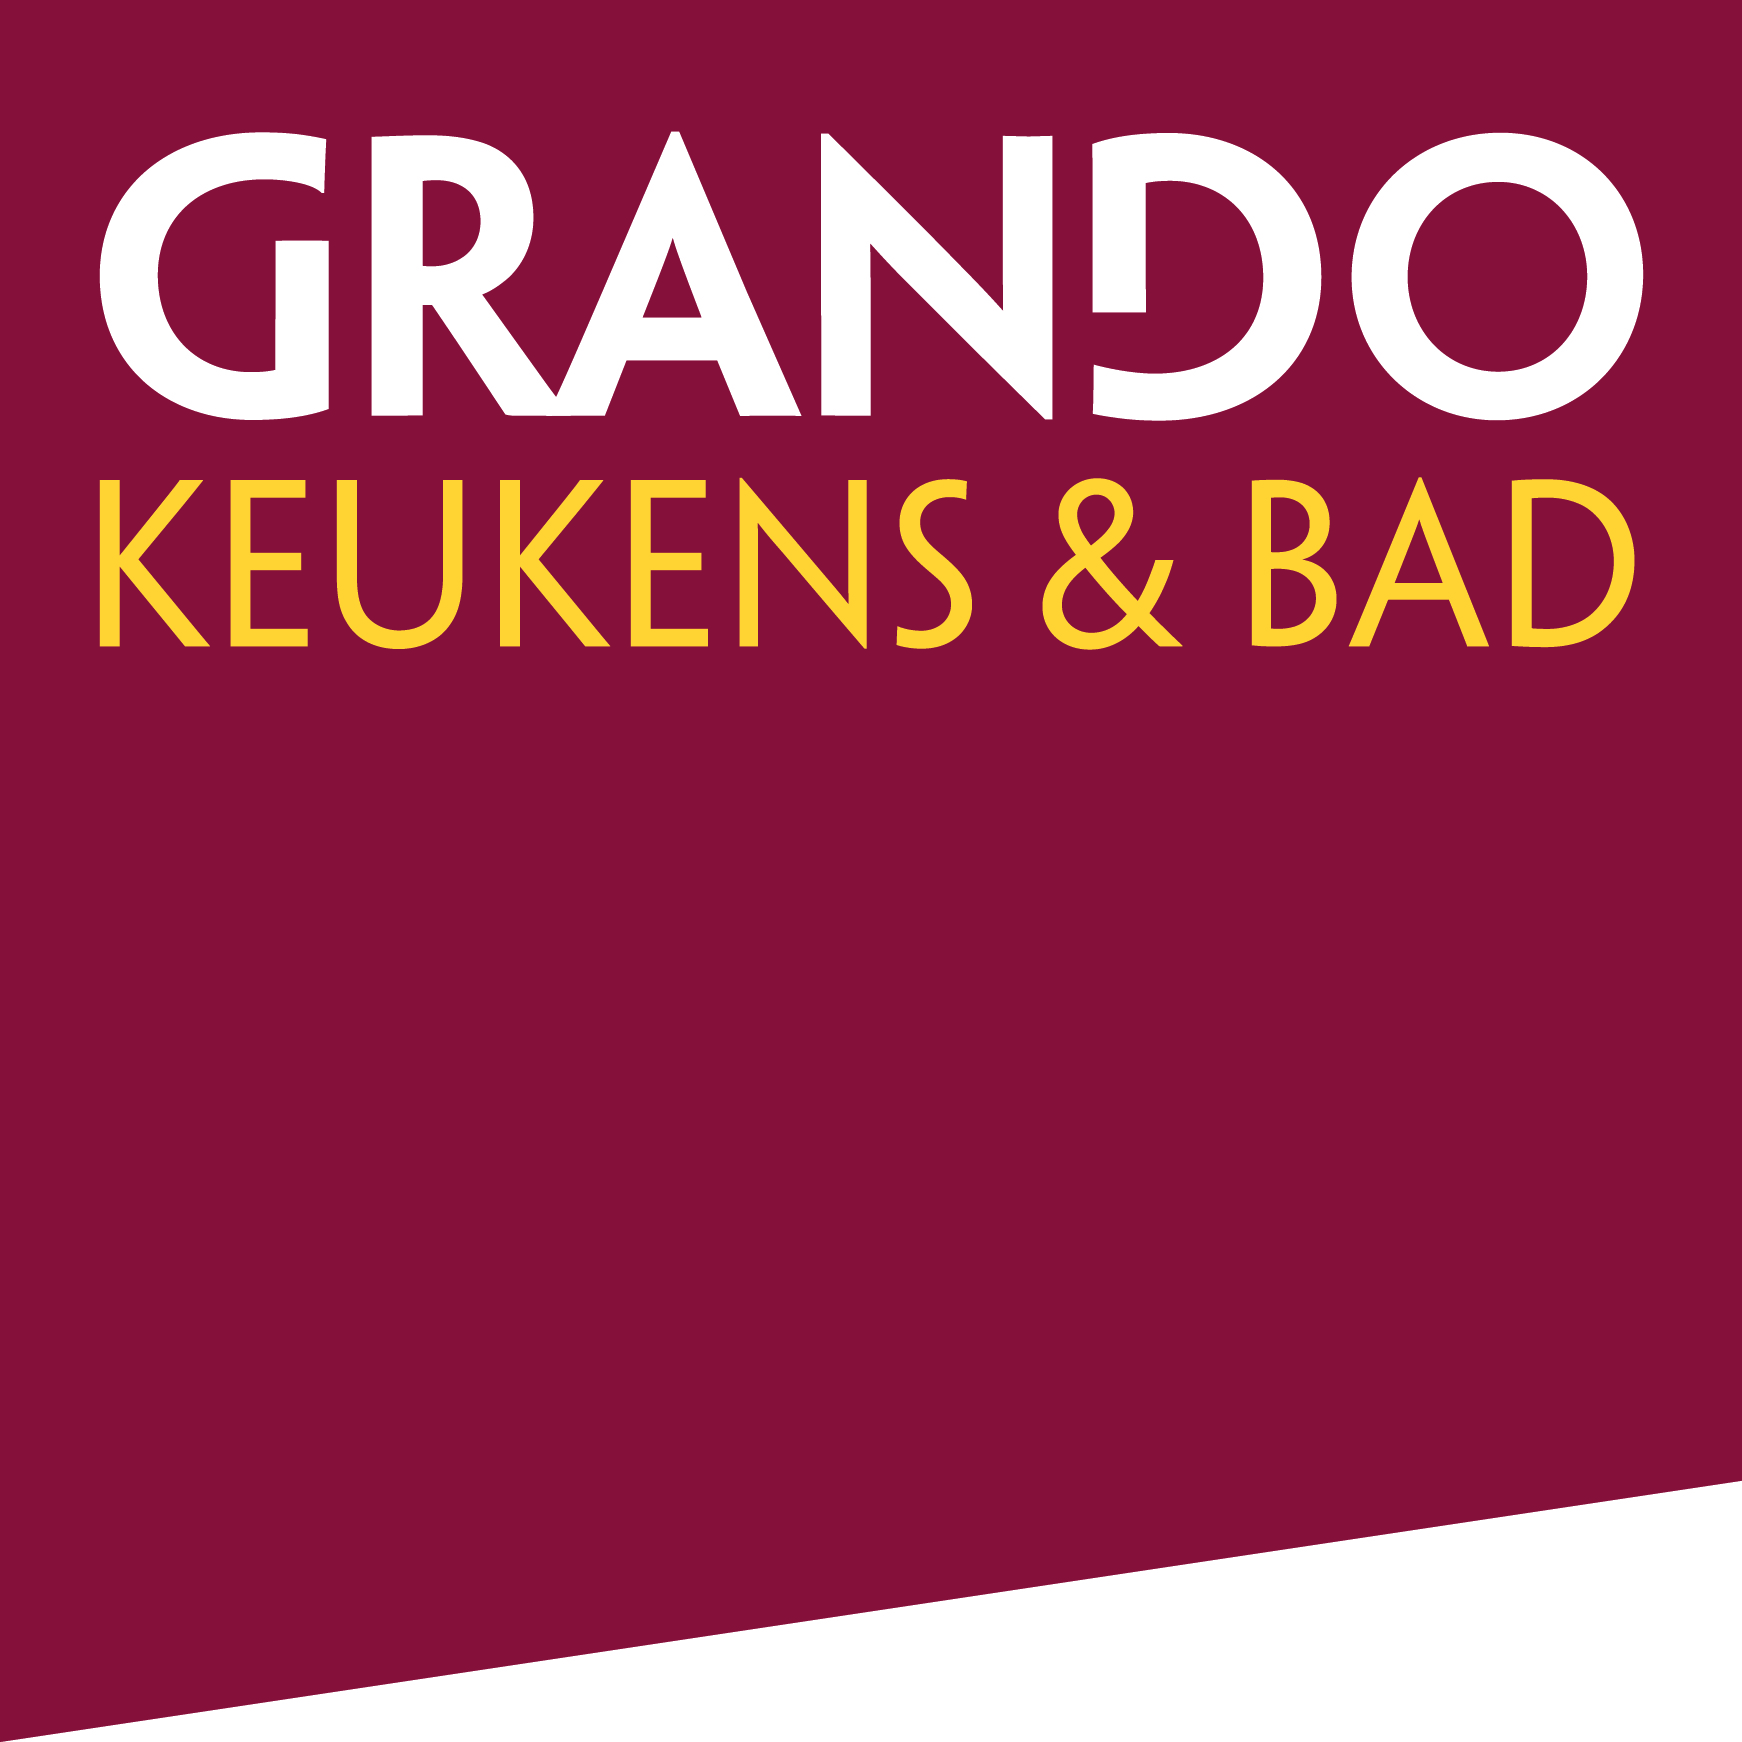 Grando Keukens & Bad Deventer